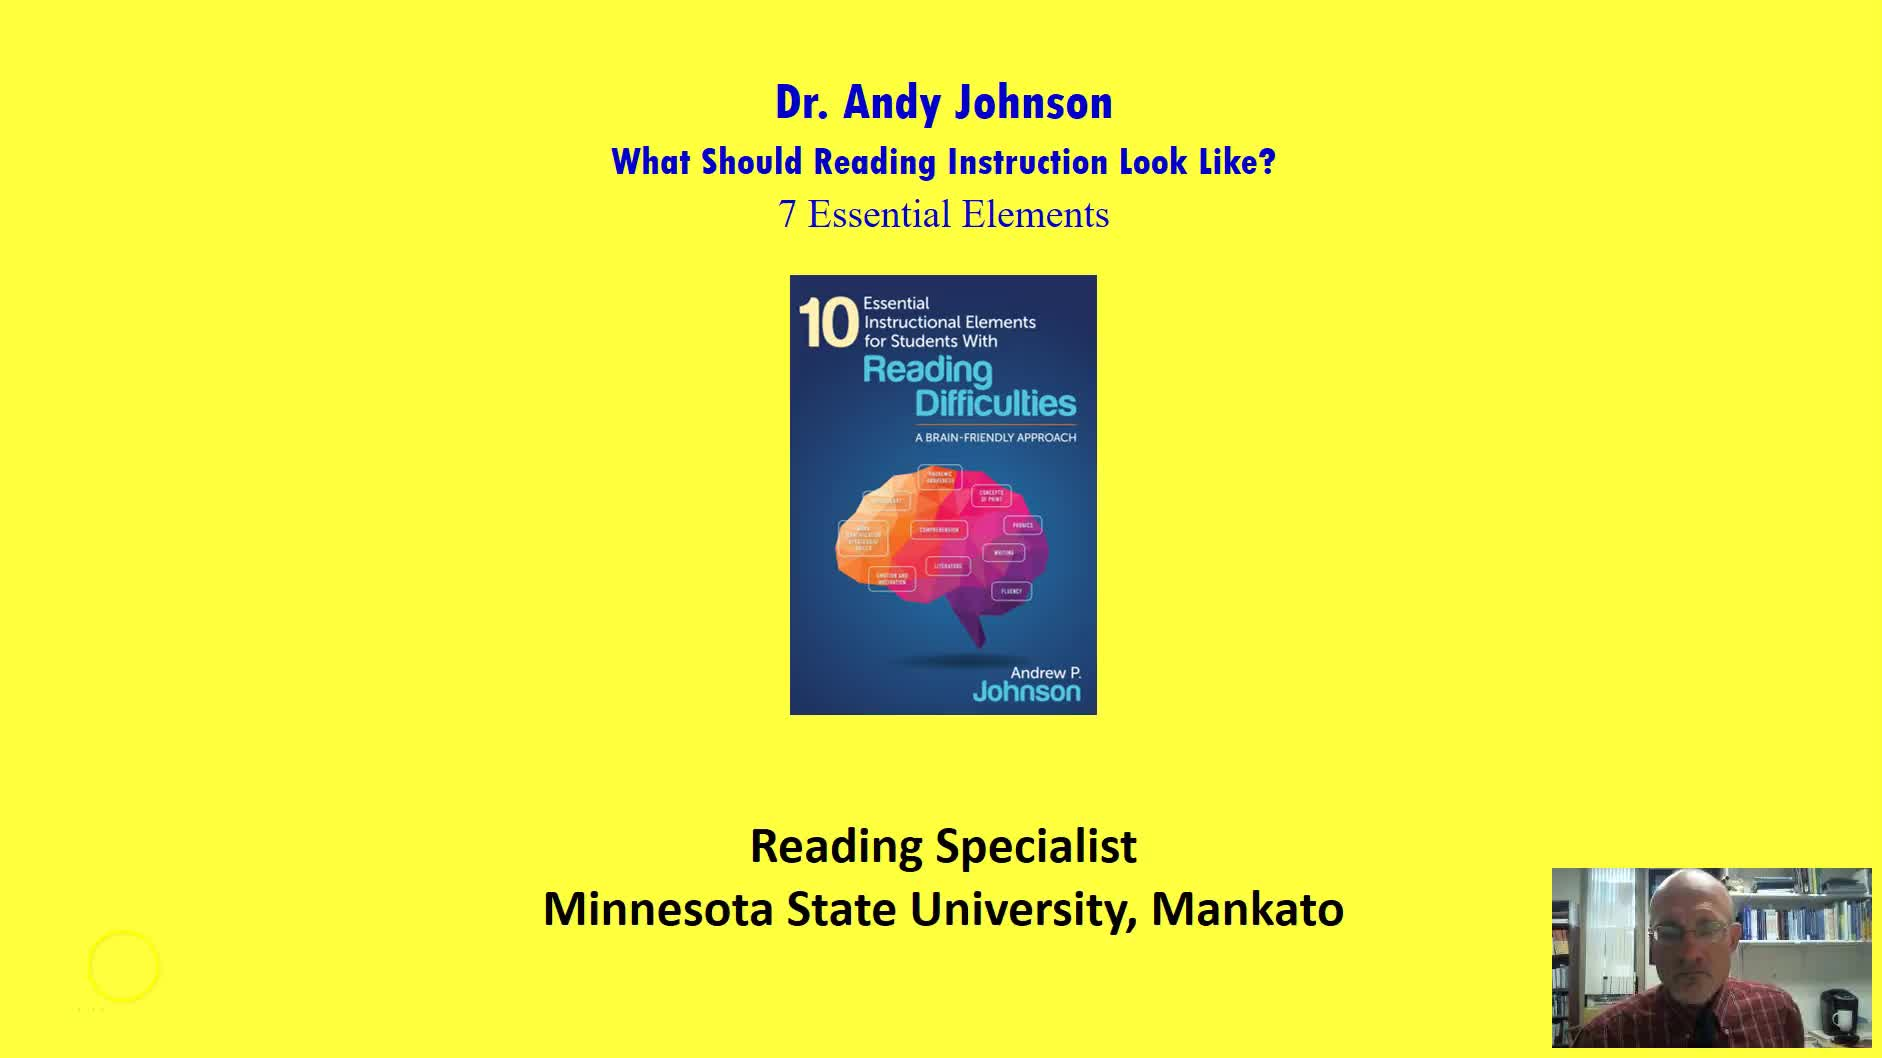 WHAT SHOULD READING INSTRUCTION LOOK LIKE?